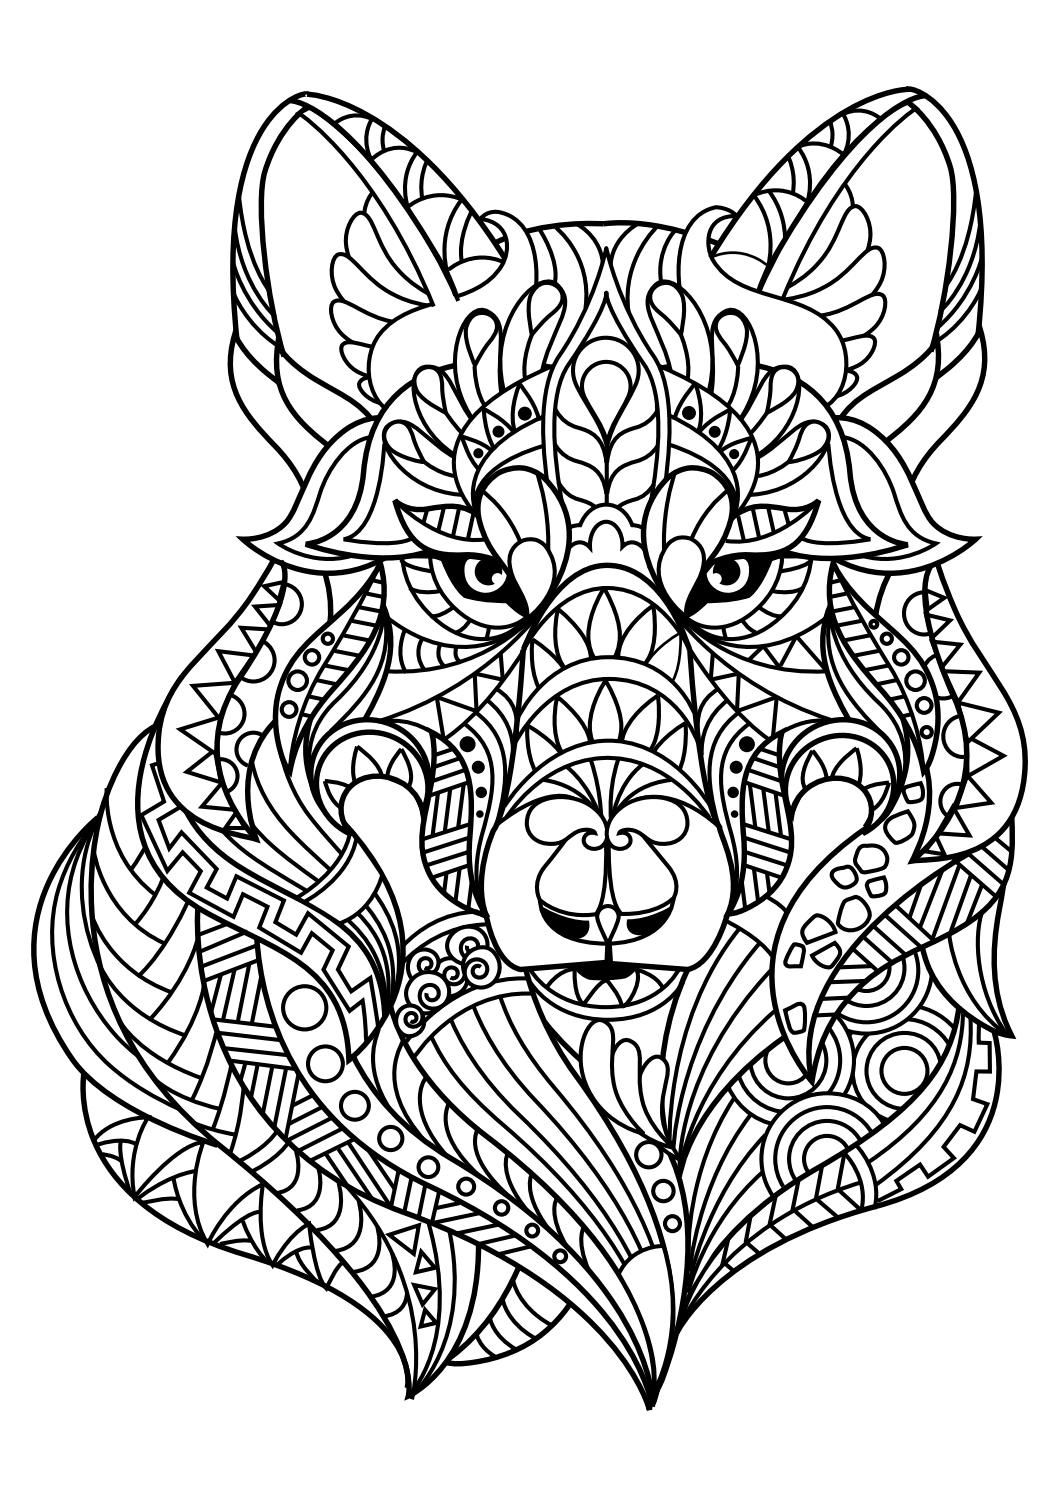 Animal coloring pages pdf Animal coloring books, Dog